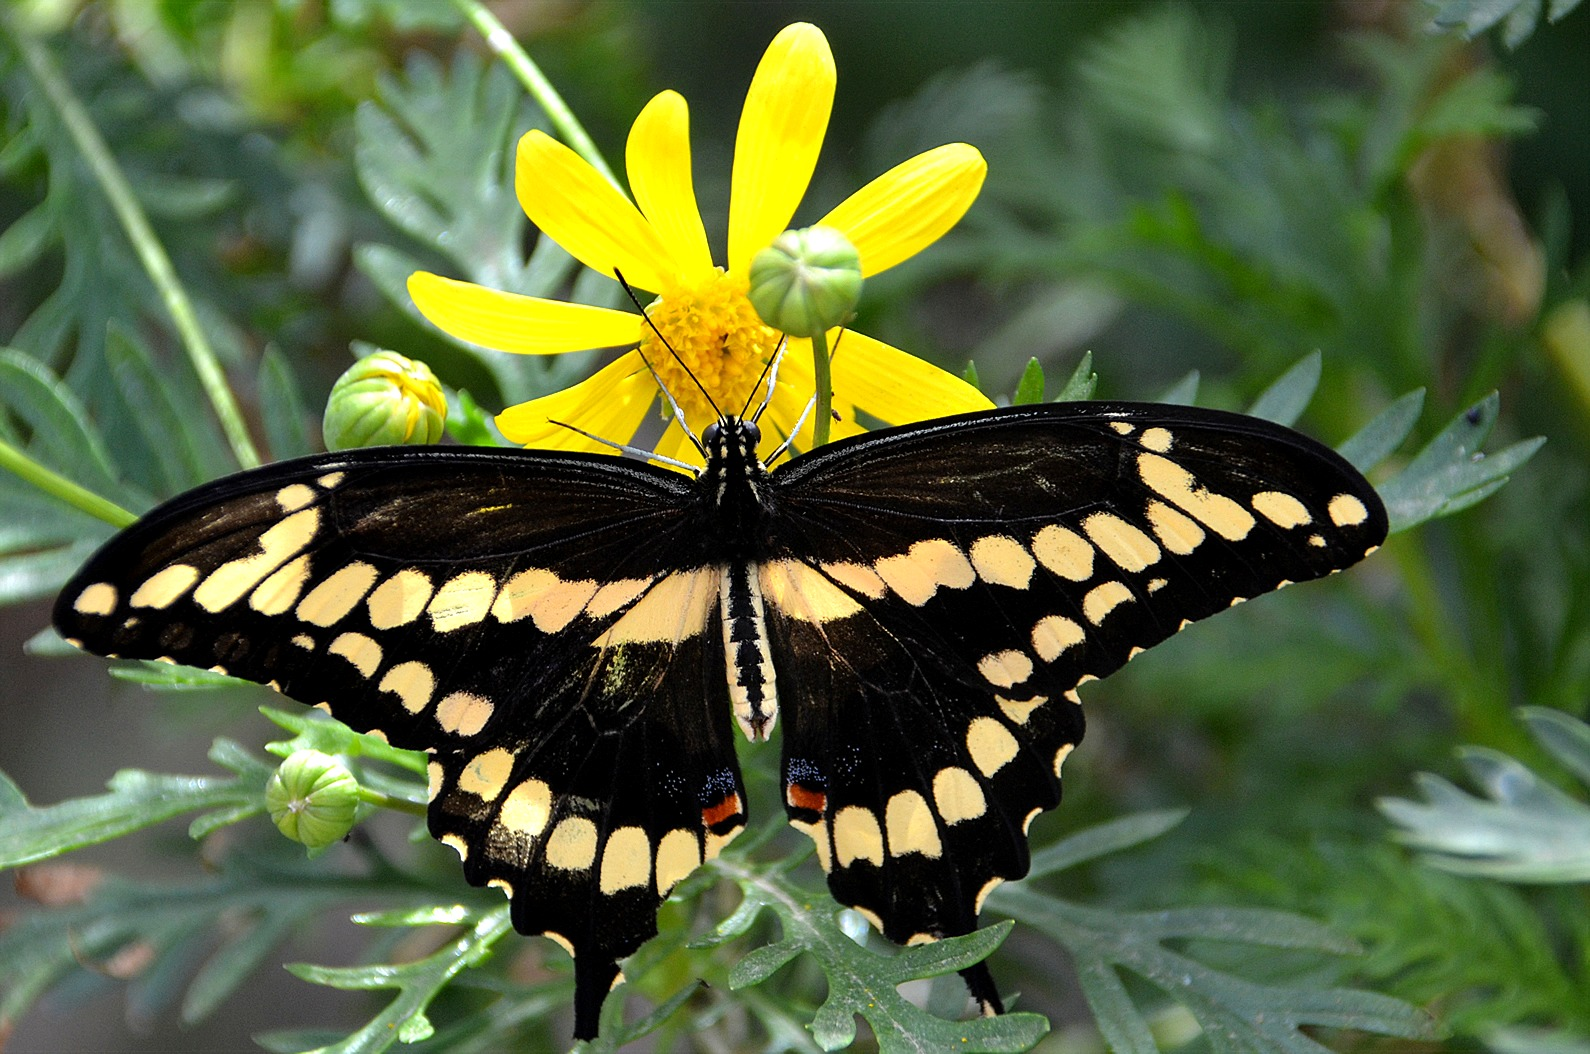 Delicieux Giant Swallowtail Butterfly, Life Cycle, Insect, Lepidoptera, Arthropod,  Host Plant, Invertebrate, Desert Botanical Gardens, Arizona ...